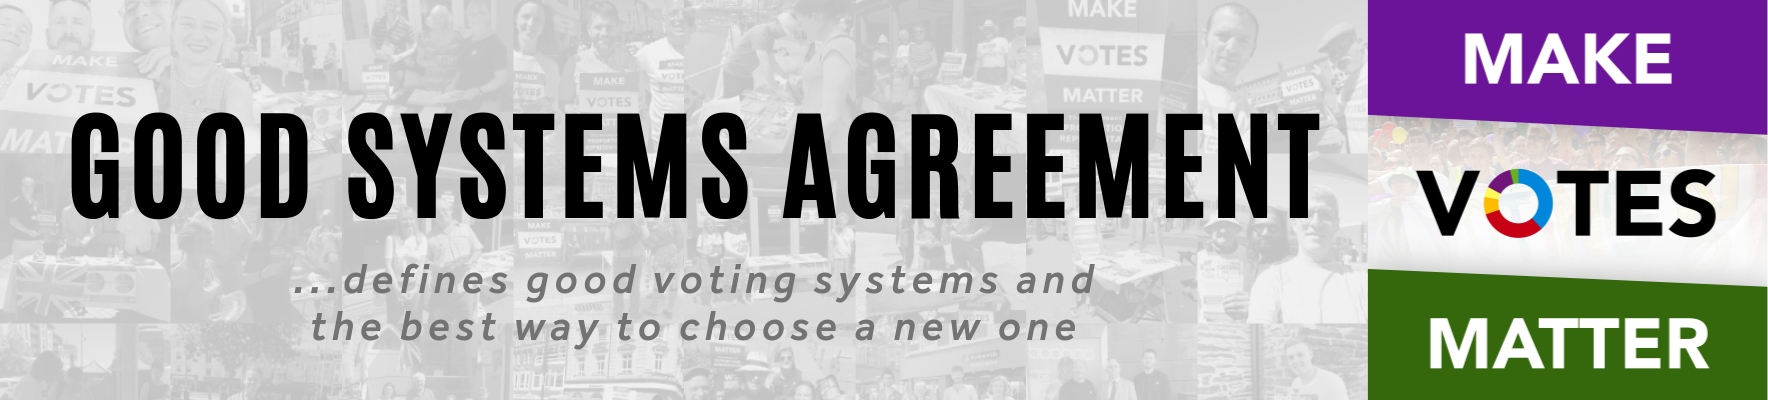 banner GSA Good systems agreement page.jpg